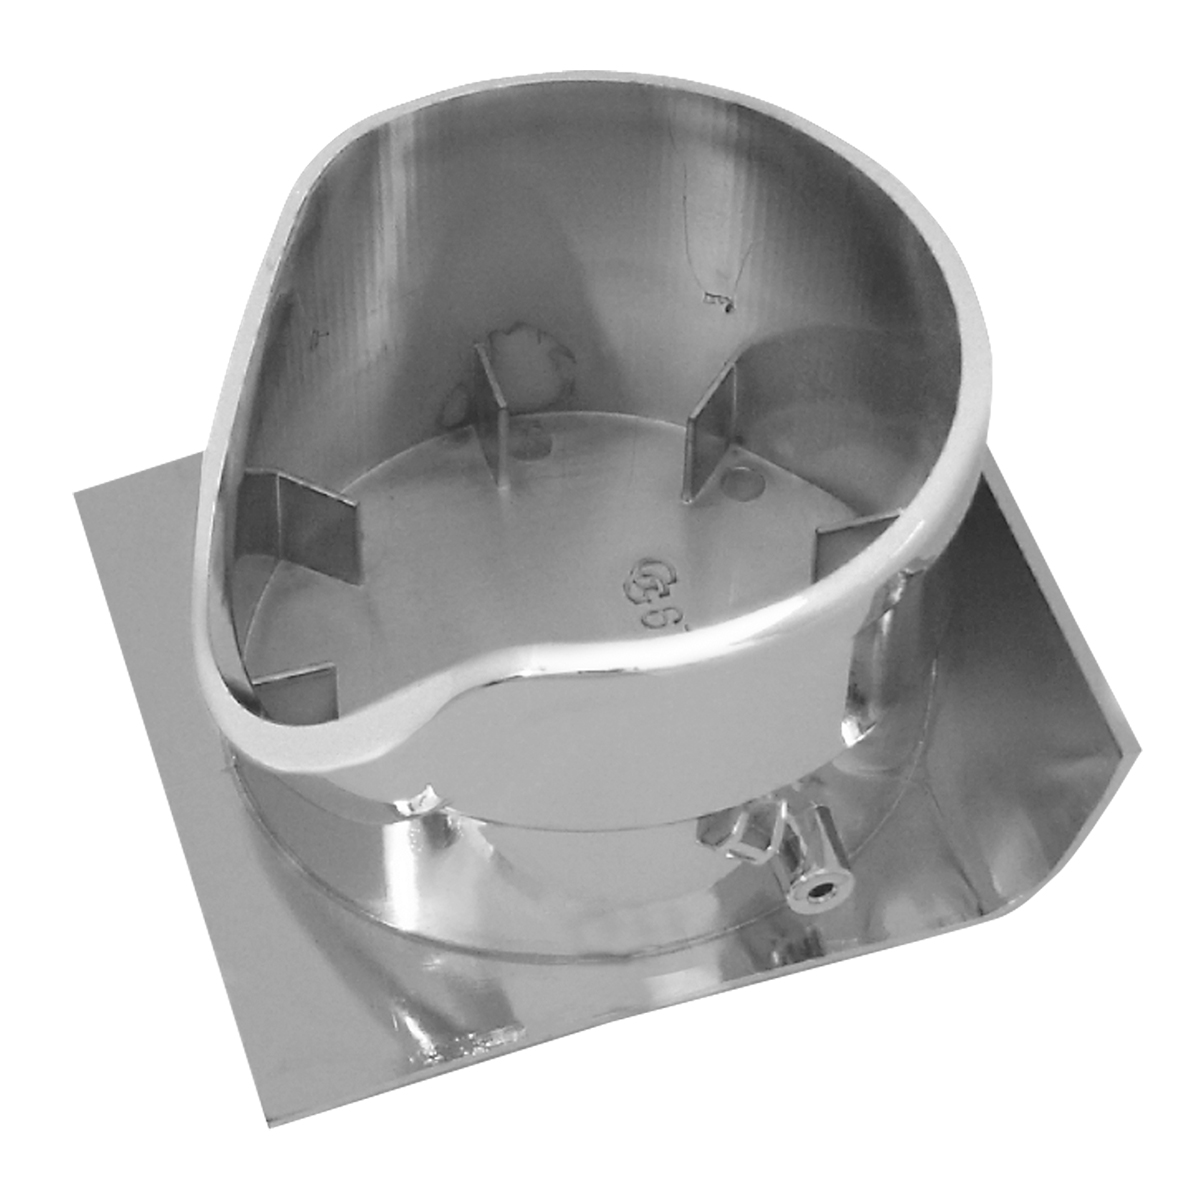 67933 Chrome Plastic Cup Holder for FL Century